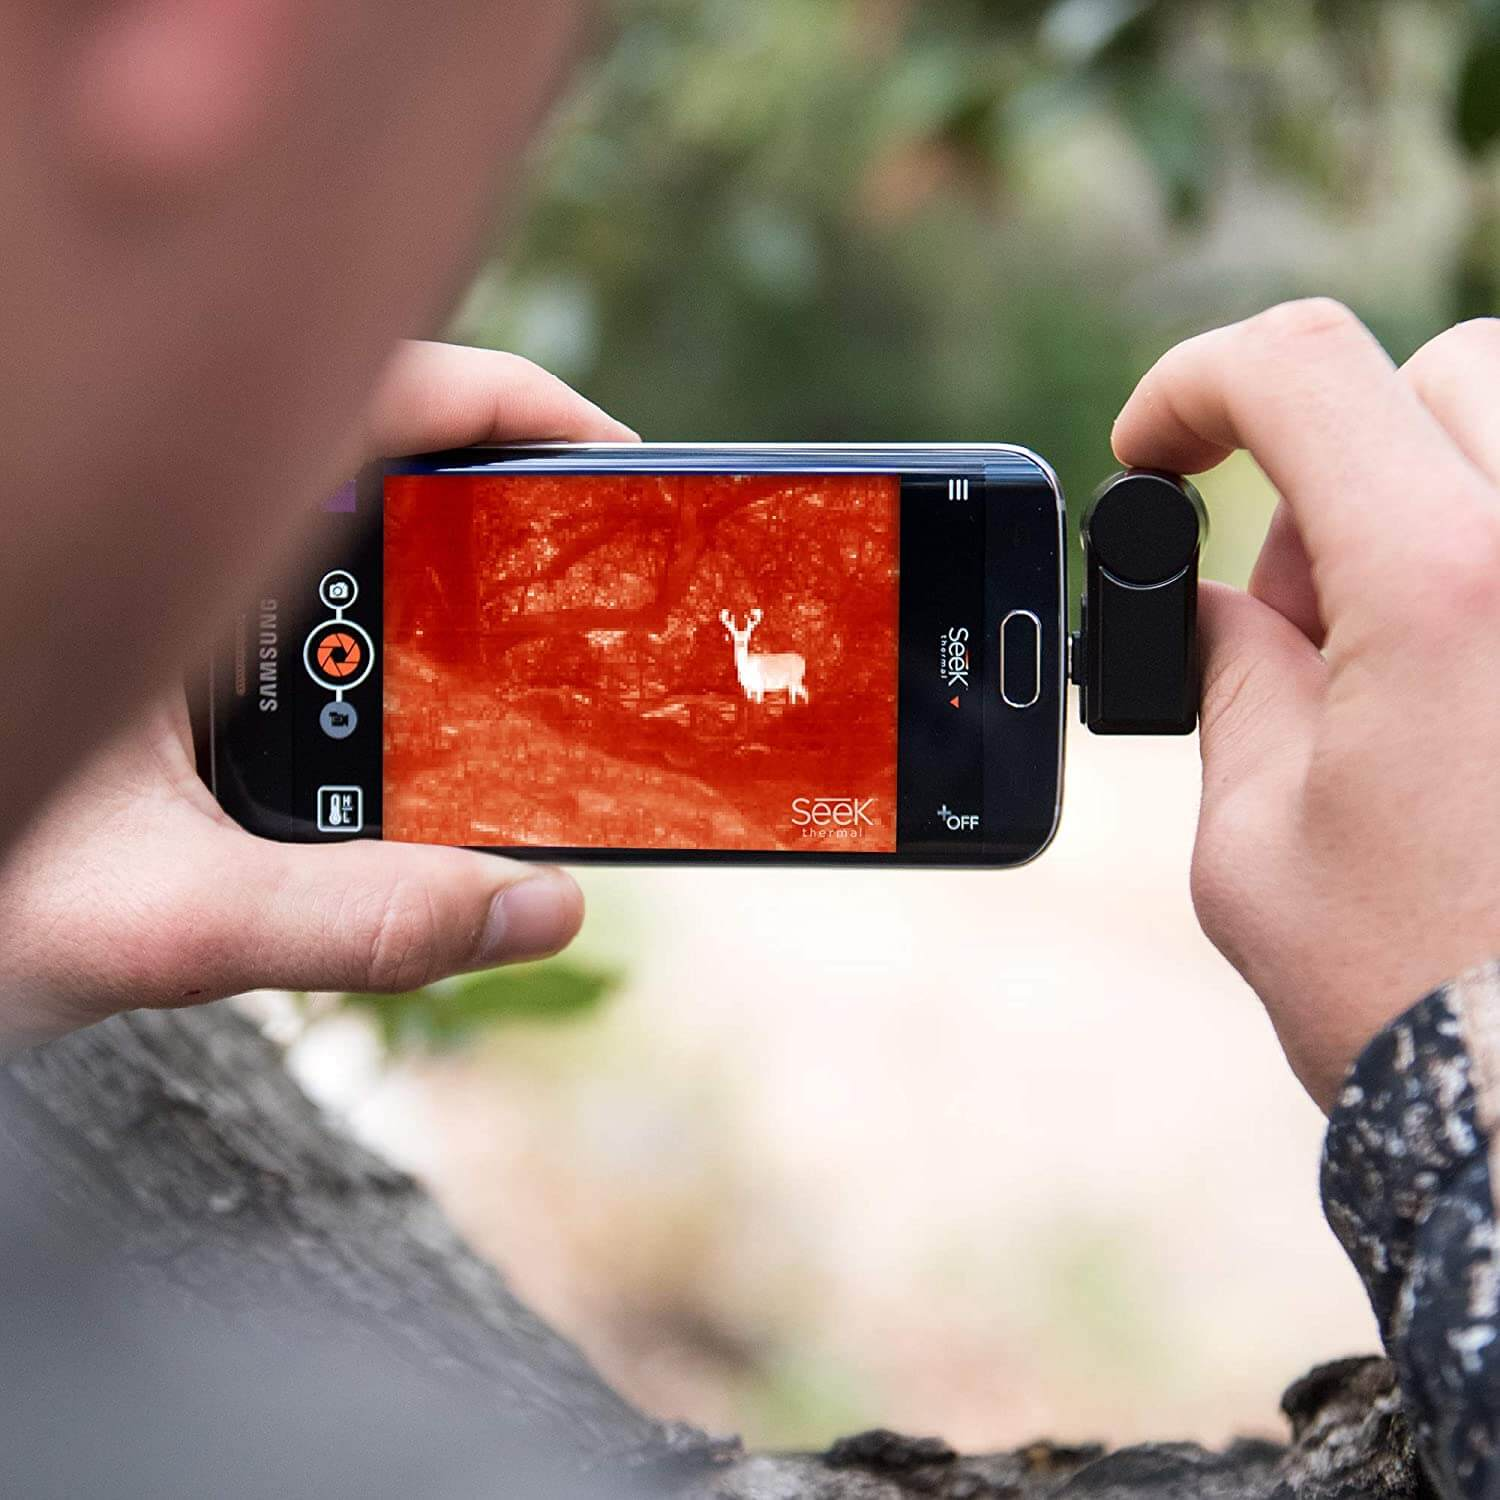 Best Thermal Imaging Camera for Android - SEEK Thermal Compact XR Compatibility